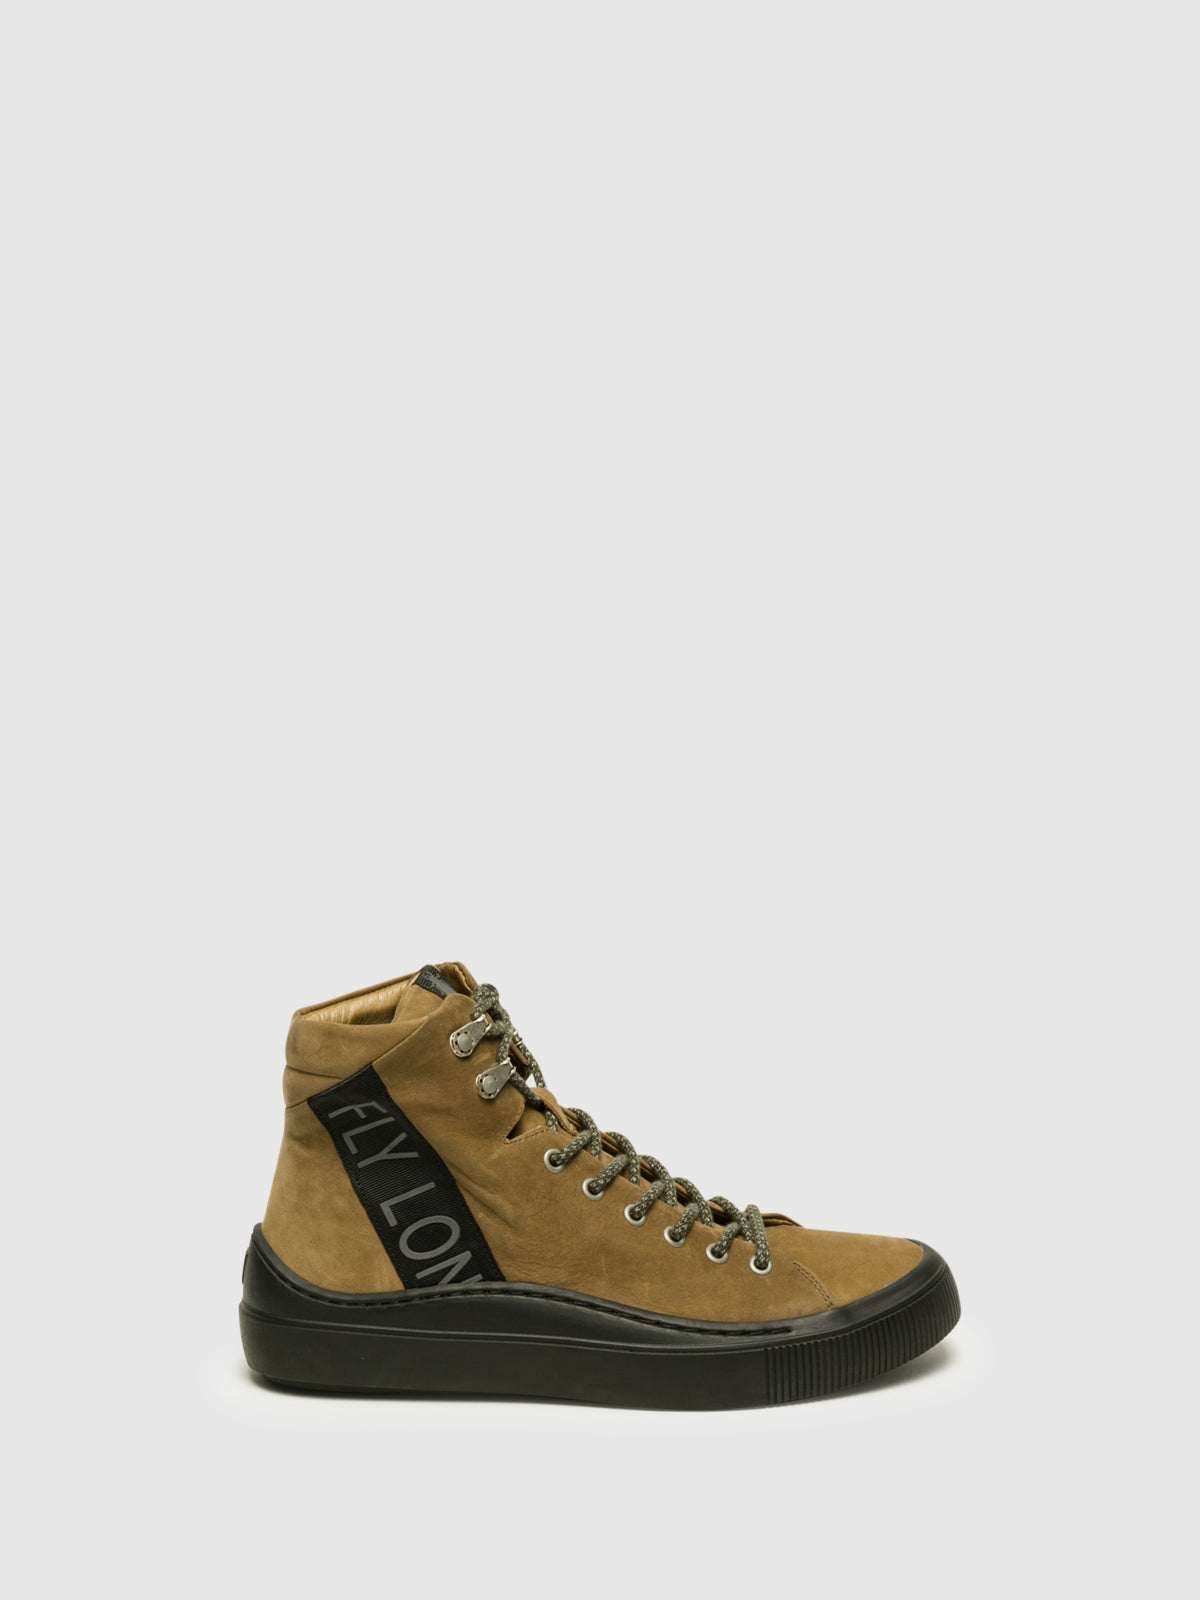 Fly London Beige Hi-Top Sneakers